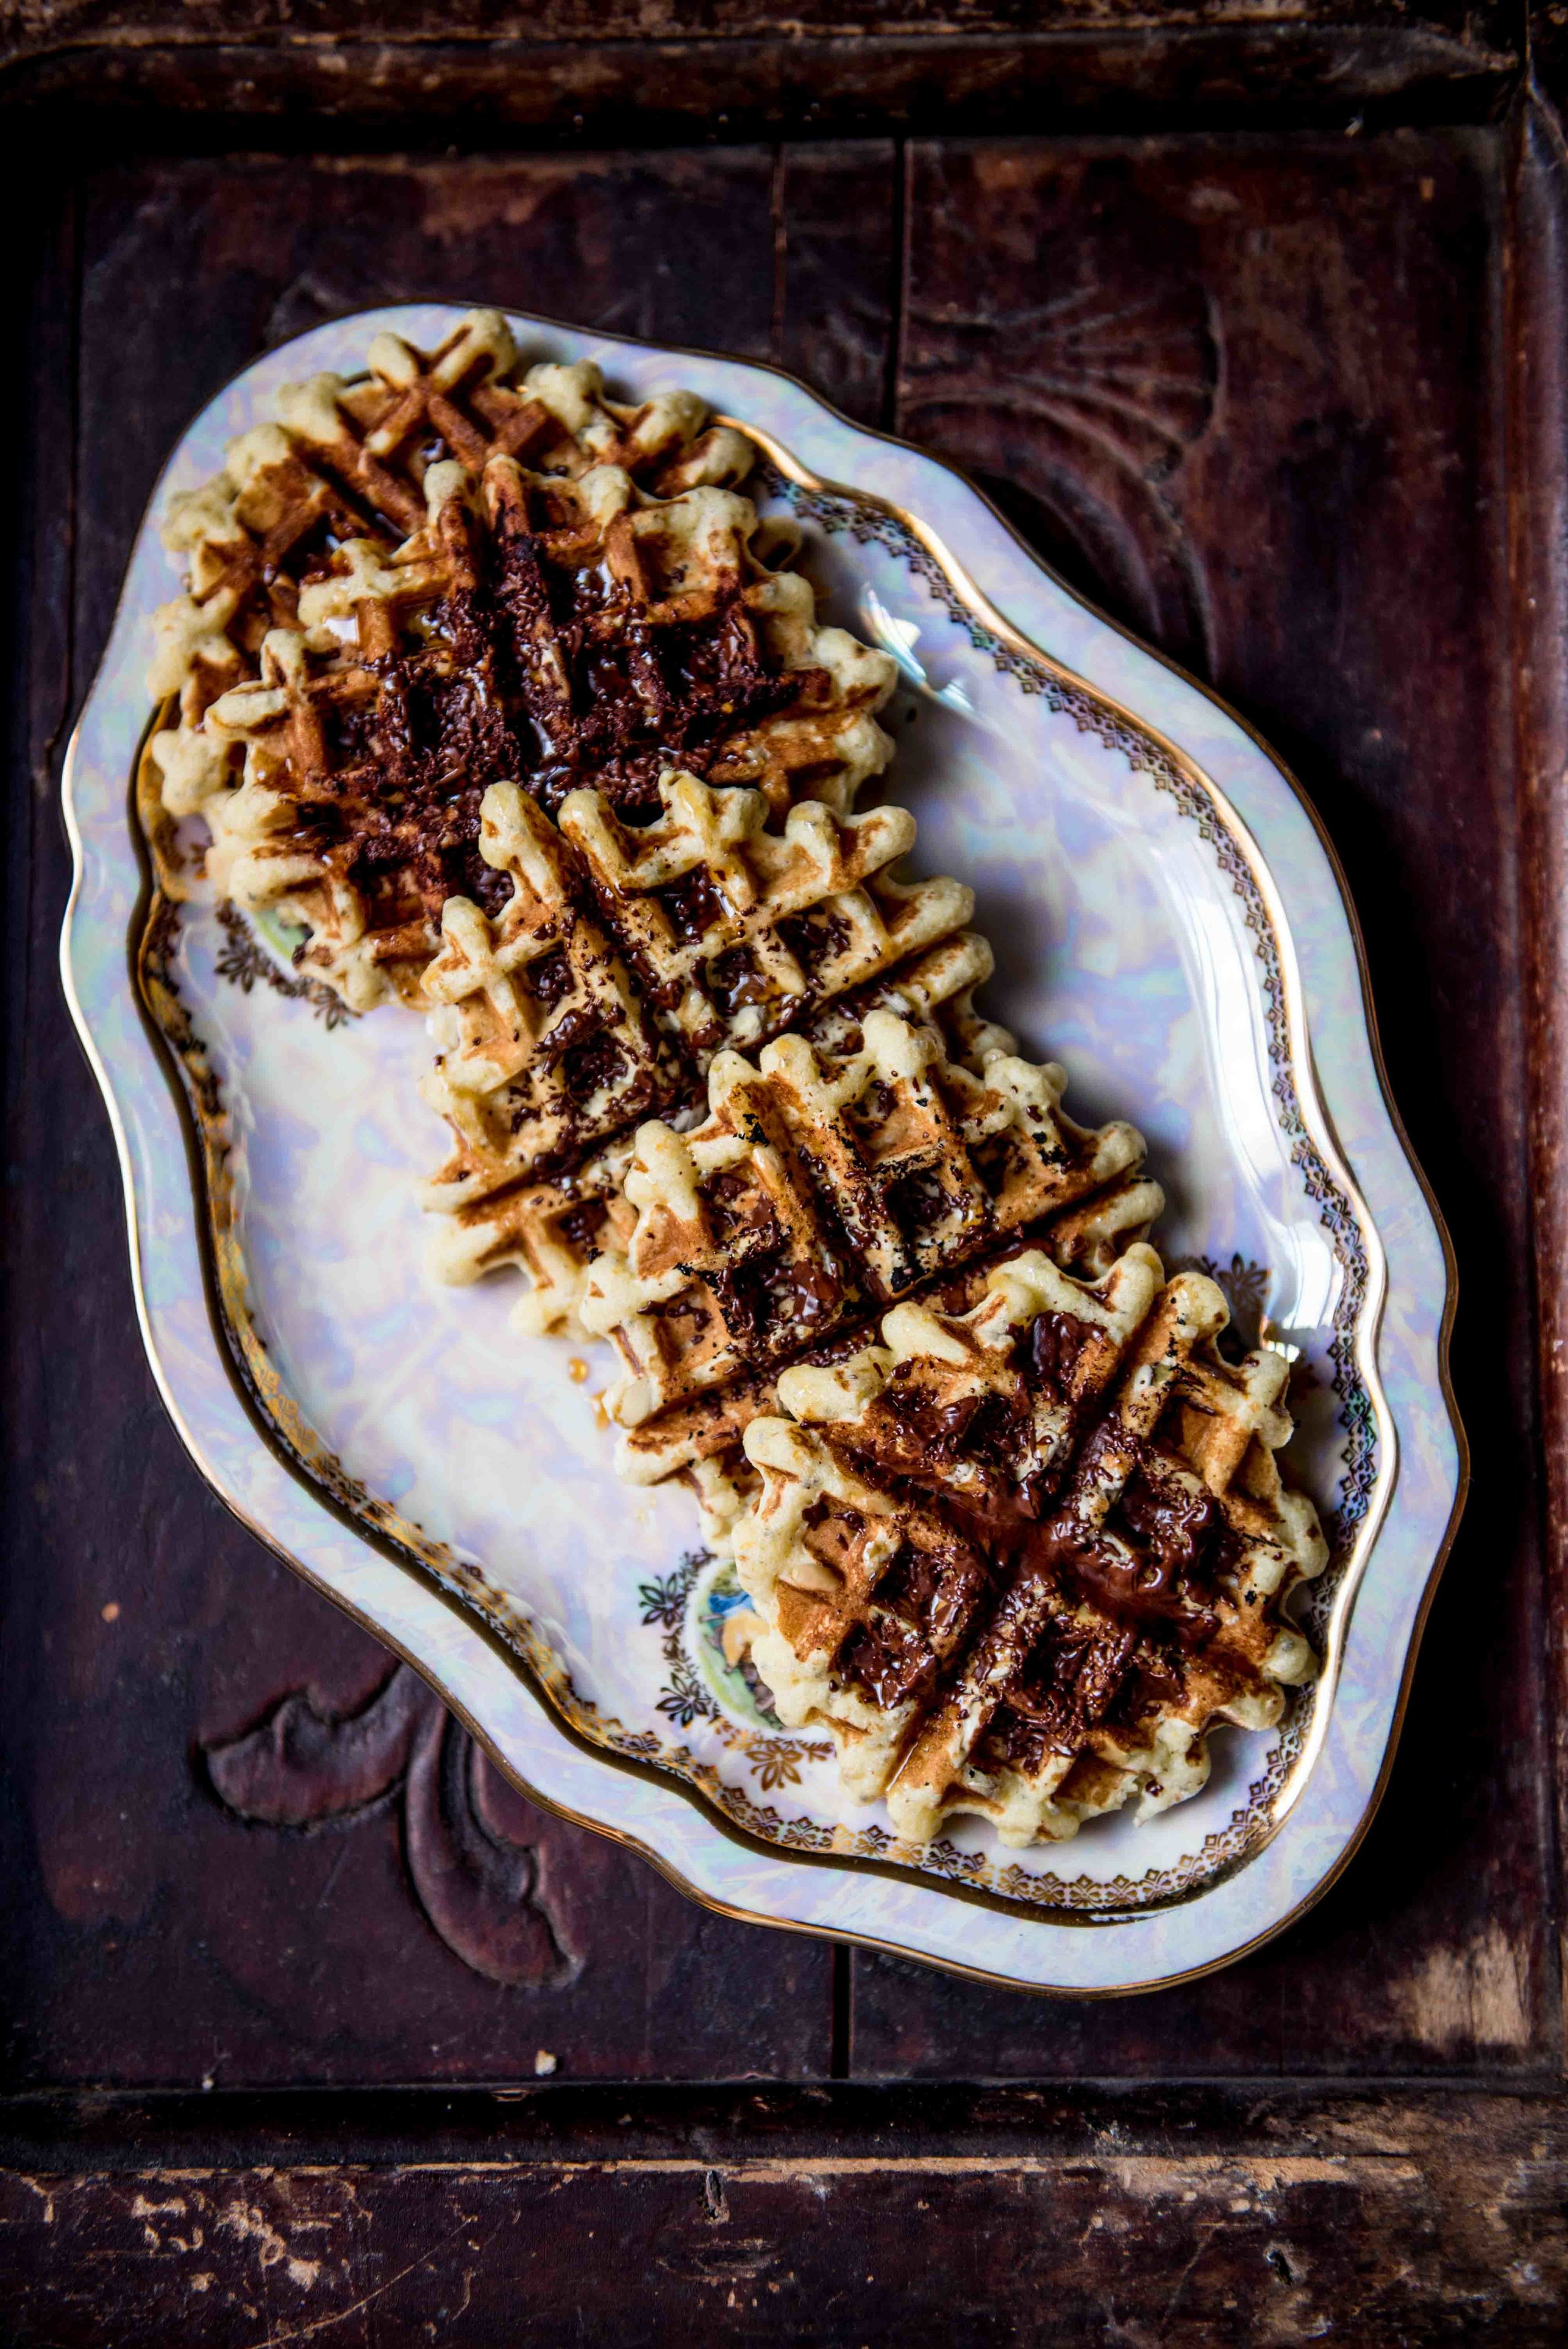 Almond Flour waffles, heavily seeded and spiced with orange sugar and sprinkled with chocolate flakes while still warm... Ah Joy!